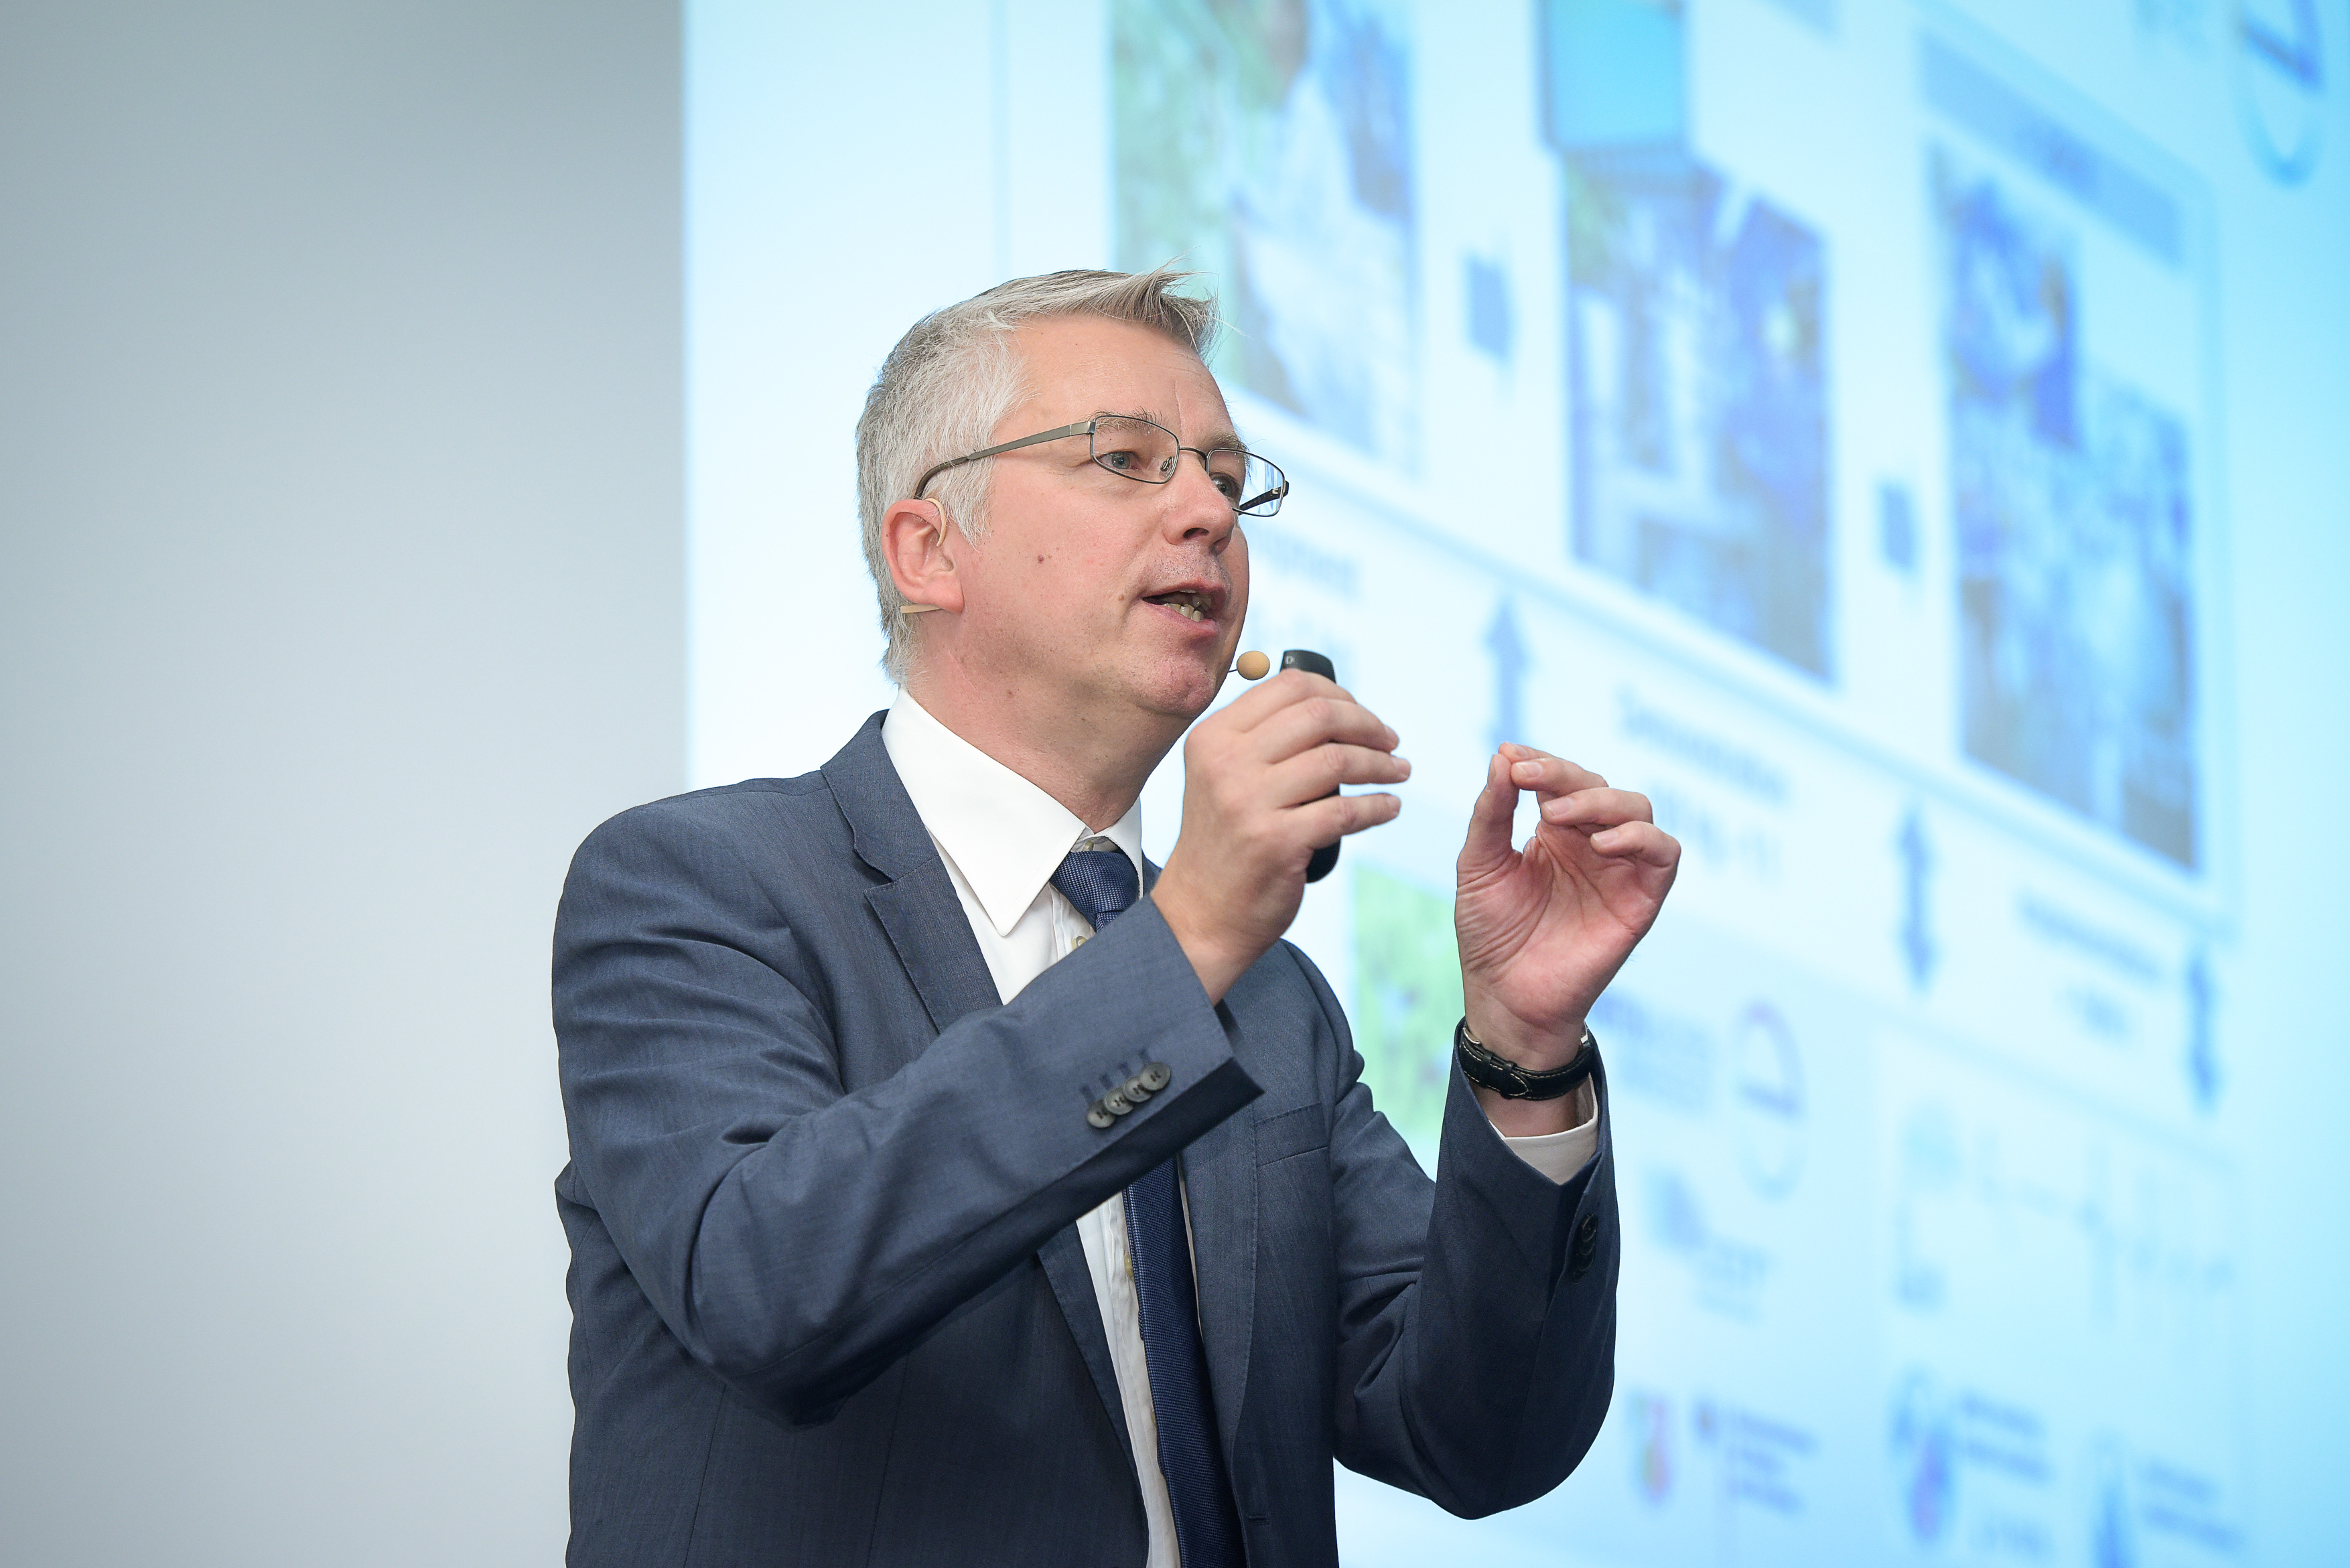 Professor Leitner during his plenary lecture